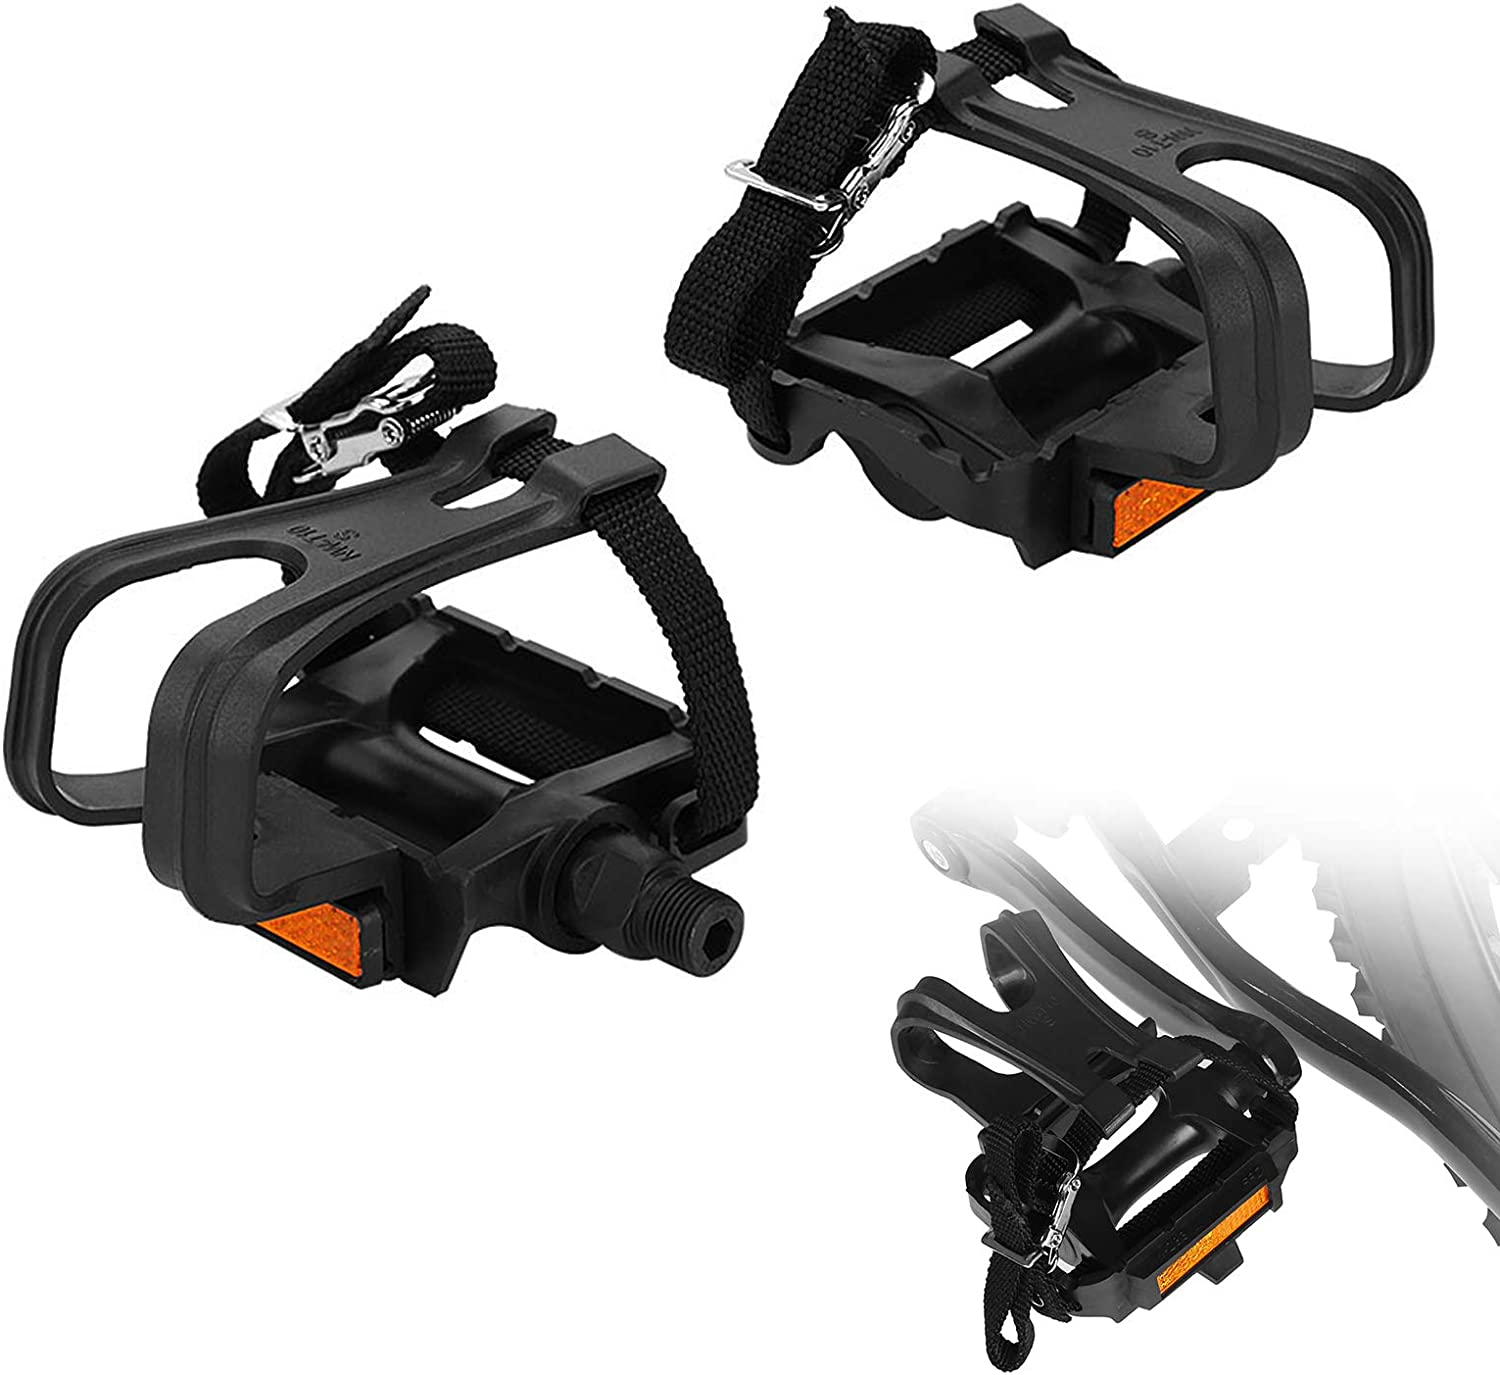 Bicycle Pedal Adopts Lightweight Hollow-out Design Mountain Bike Pedals with Toe Clips and Straps Design 1 Pair Road Bike Pedals Yosoo Health Gear Toe Cages for Peloton Bike